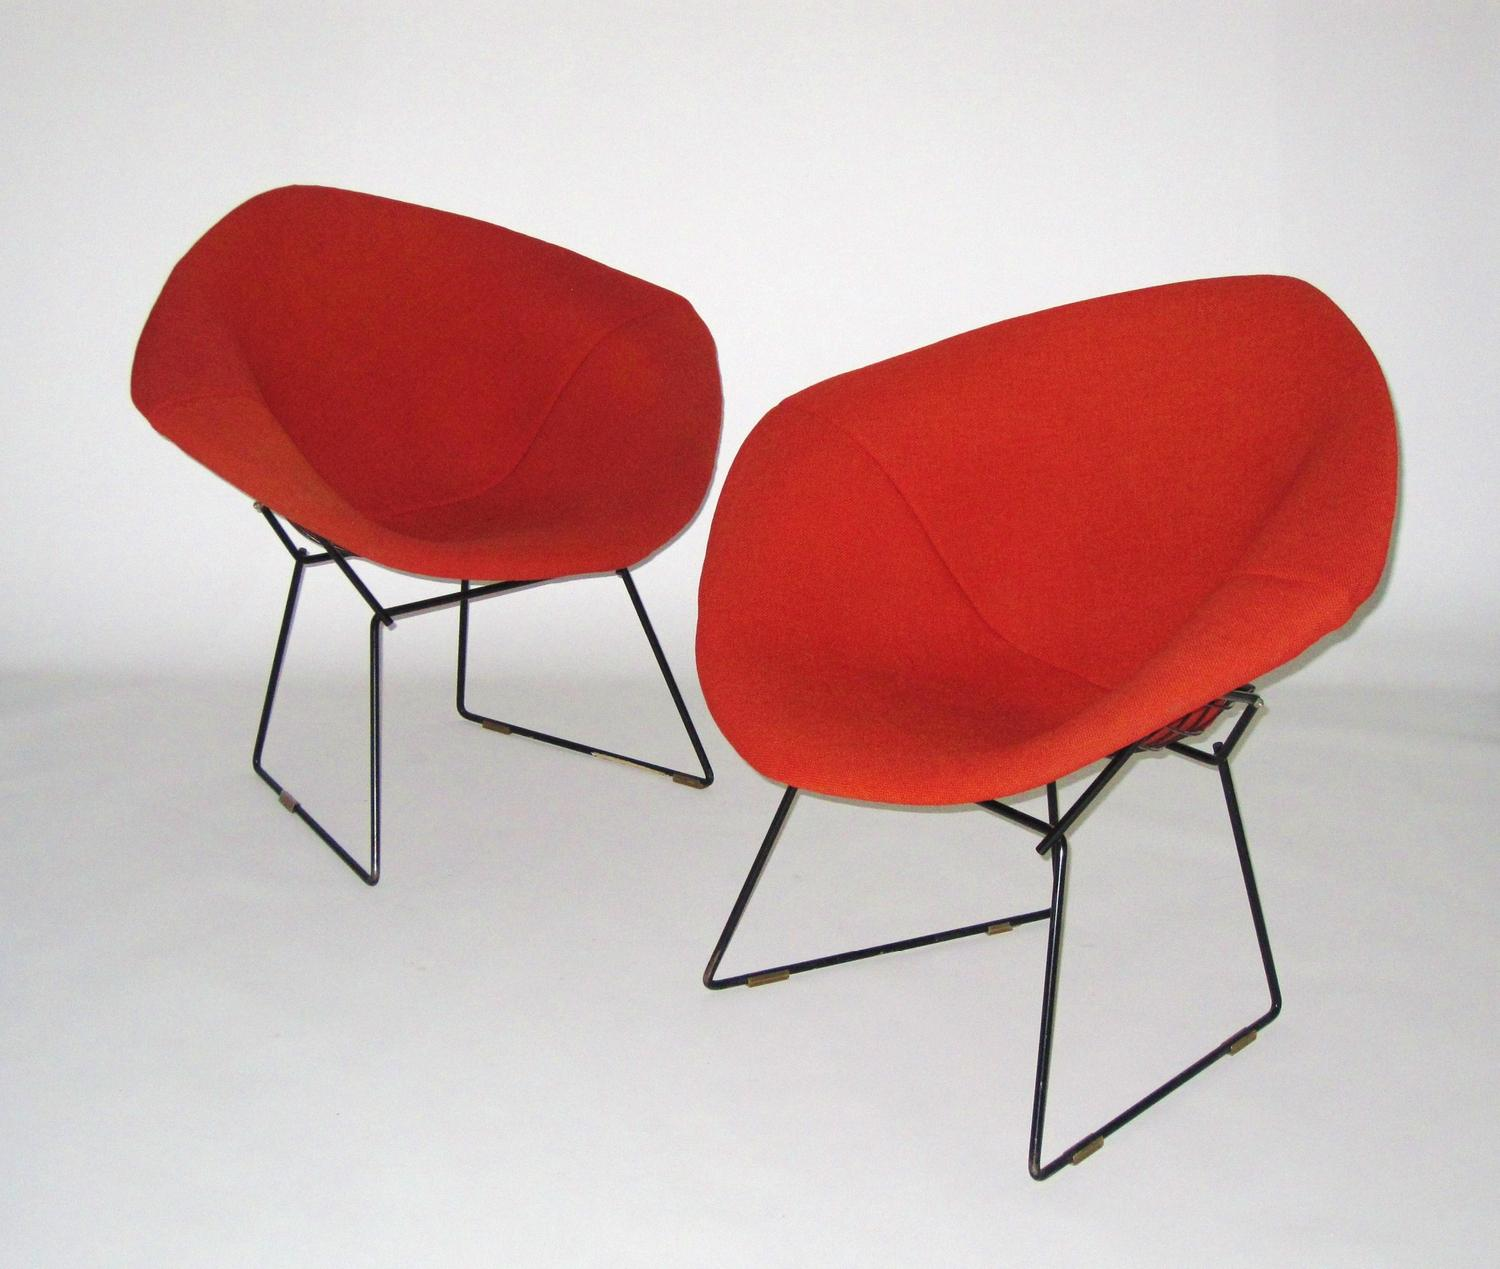 harry bertoia for knoll diamond chairs pair c 1950. Black Bedroom Furniture Sets. Home Design Ideas